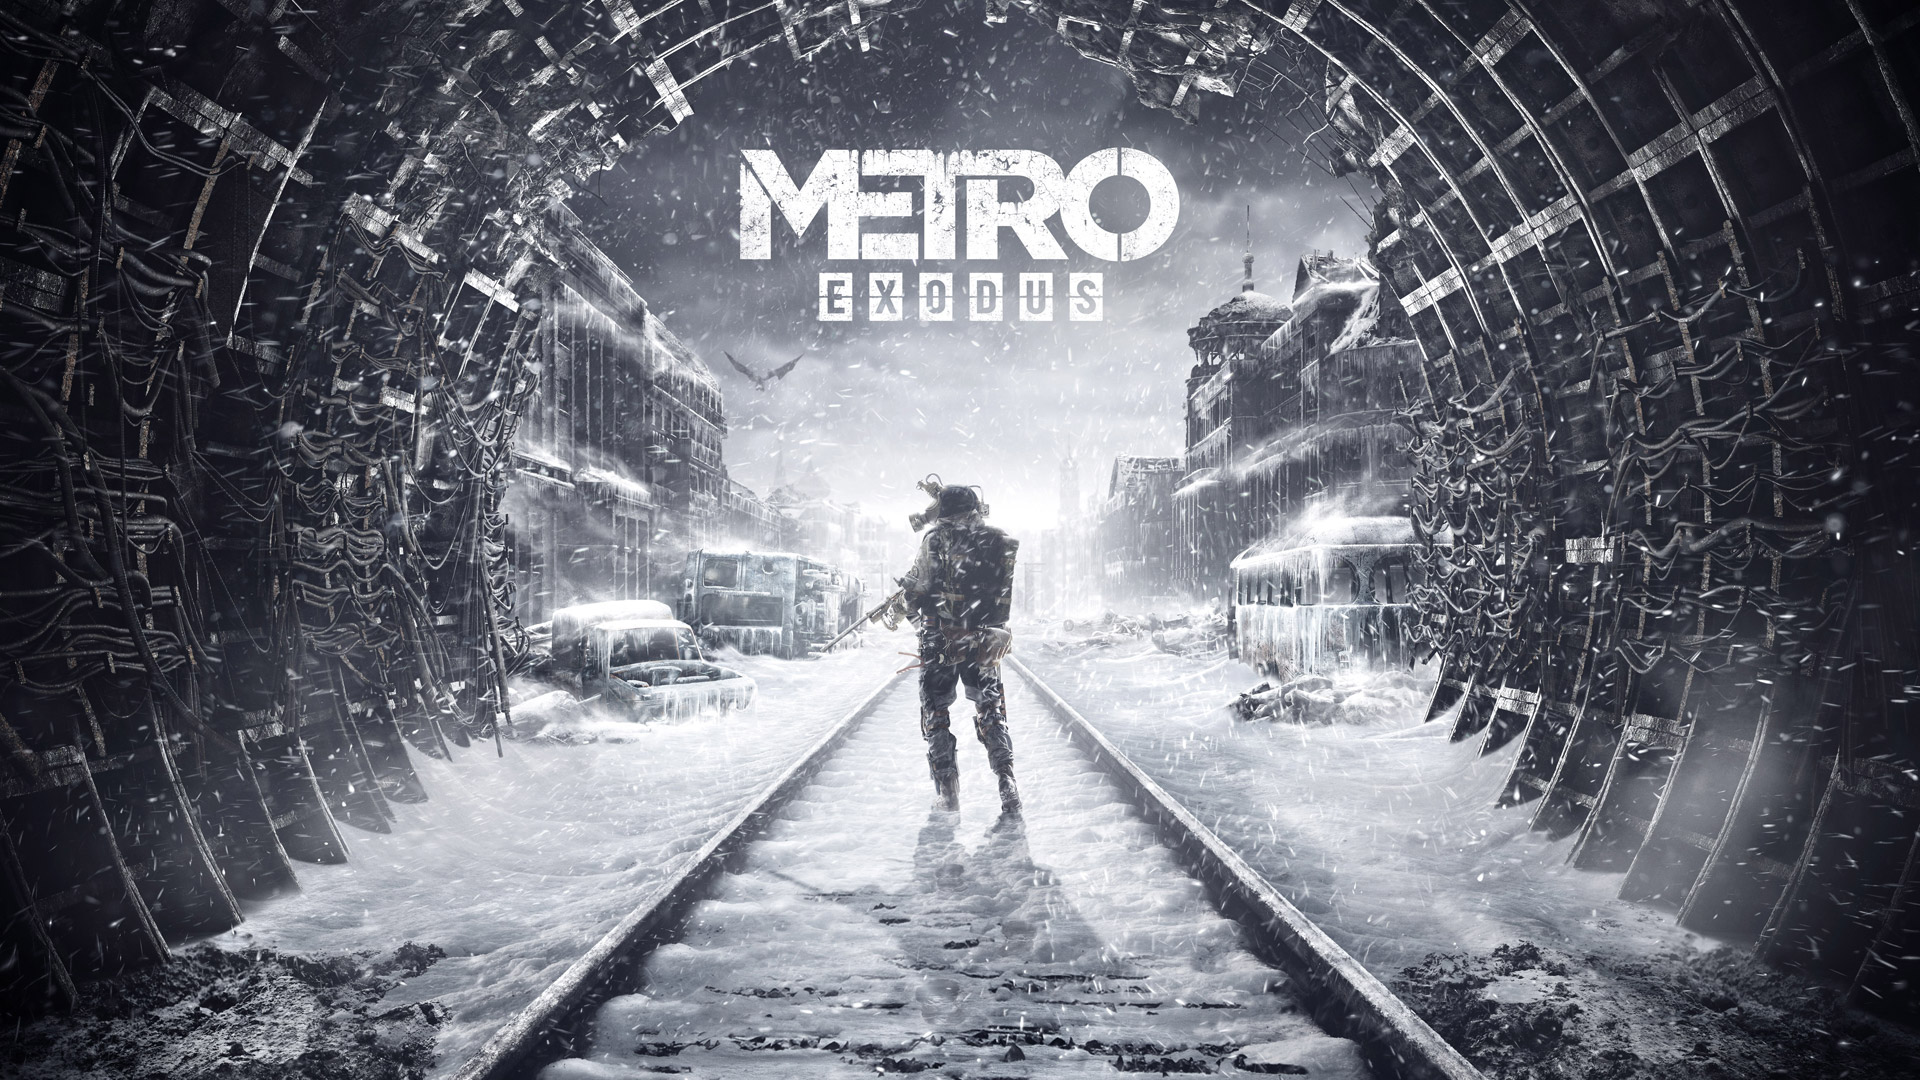 Free Metro Exodus Wallpaper in 1920x1080